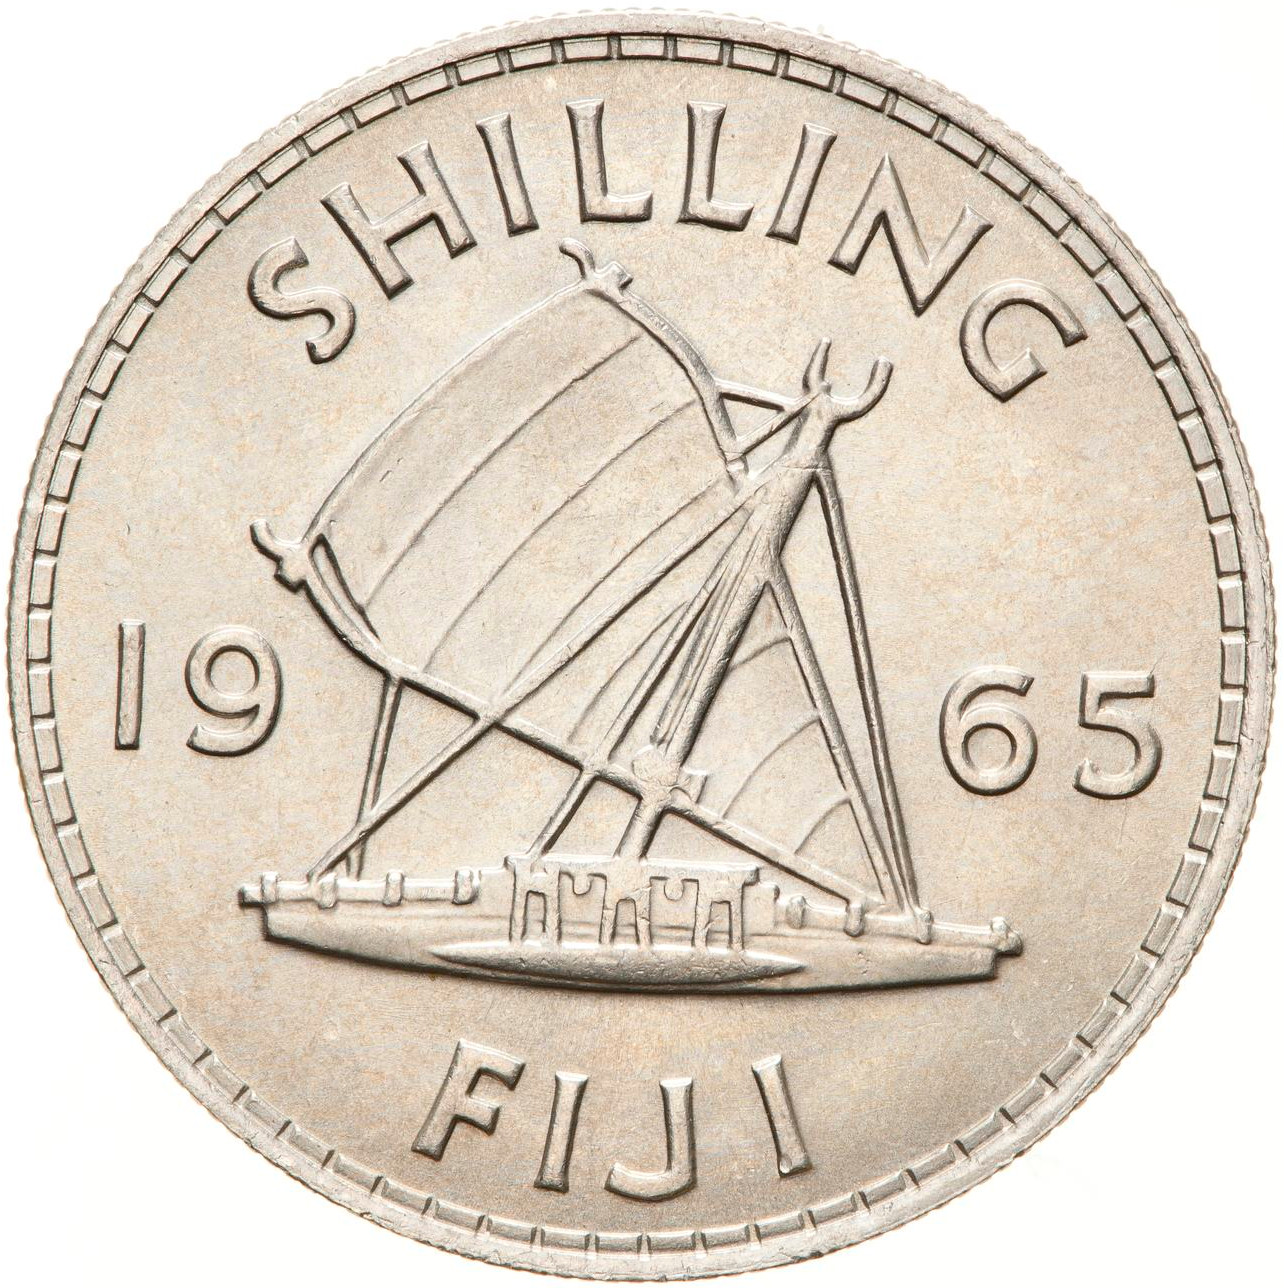 Shilling 1965: Photo Coin - 1 Shilling, Fiji, 1965